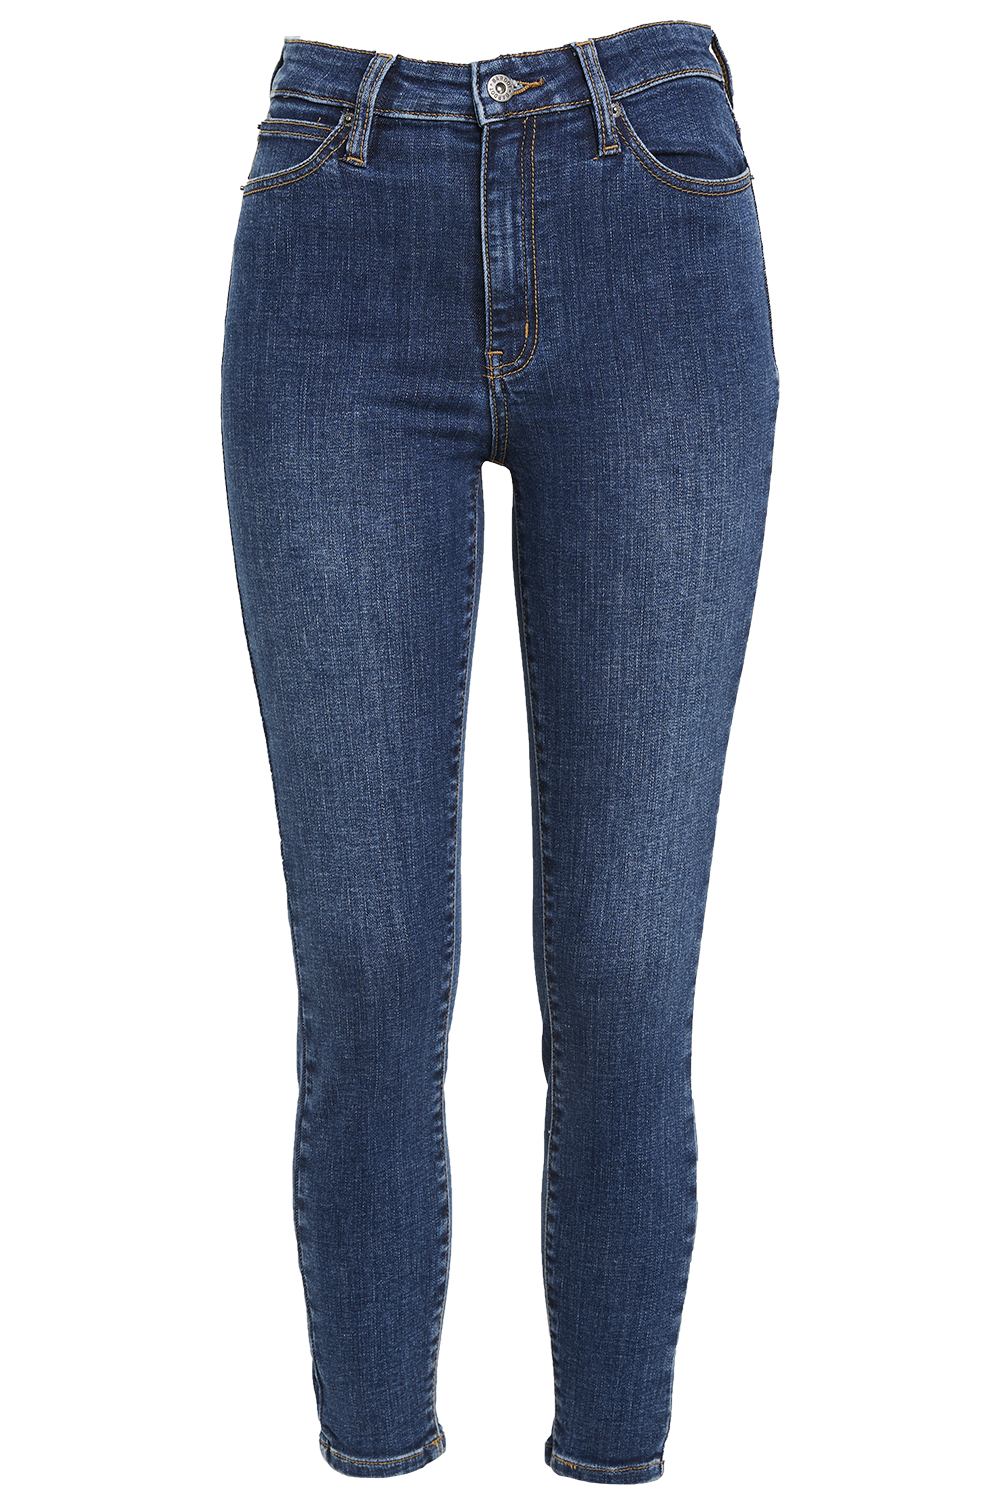 KHLOE HI CROP JEAN in colour CAPTAIN'S BLUE